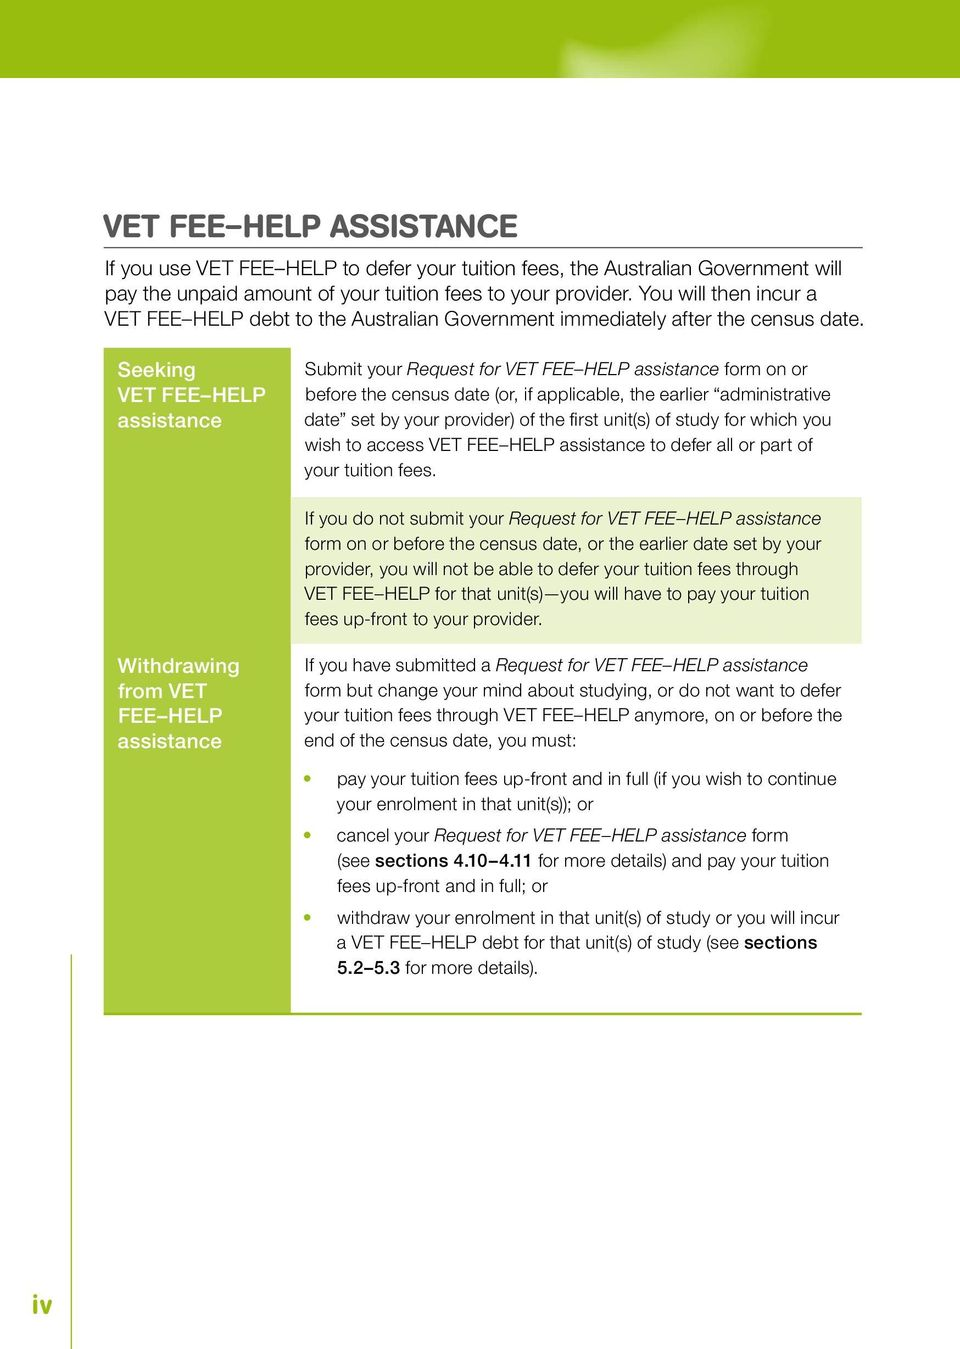 Seeking VET FEE HELP assistance Submit your Request for VET FEE HELP assistance form on or before the census date (or, if applicable, the earlier administrative date set by your provider) of the fi